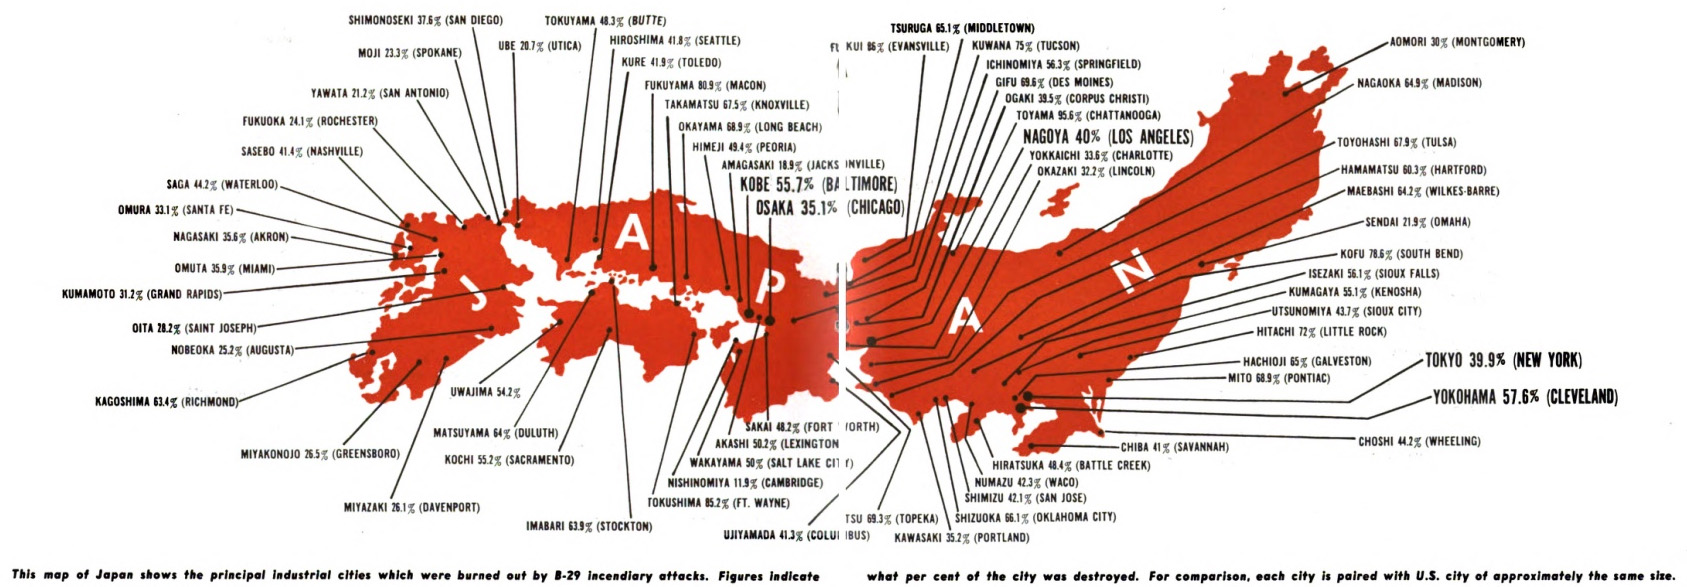 Nagasaki Was Bombed 68 Years Ago Today Why Does There Seem To Be This Diagram Http Enacademicru Pictures Enwiki 6 Ing01png Blognuclearsecrecycom Wp Content Uploads 2013 04 1945 Arnold Map Bombing Of Japan